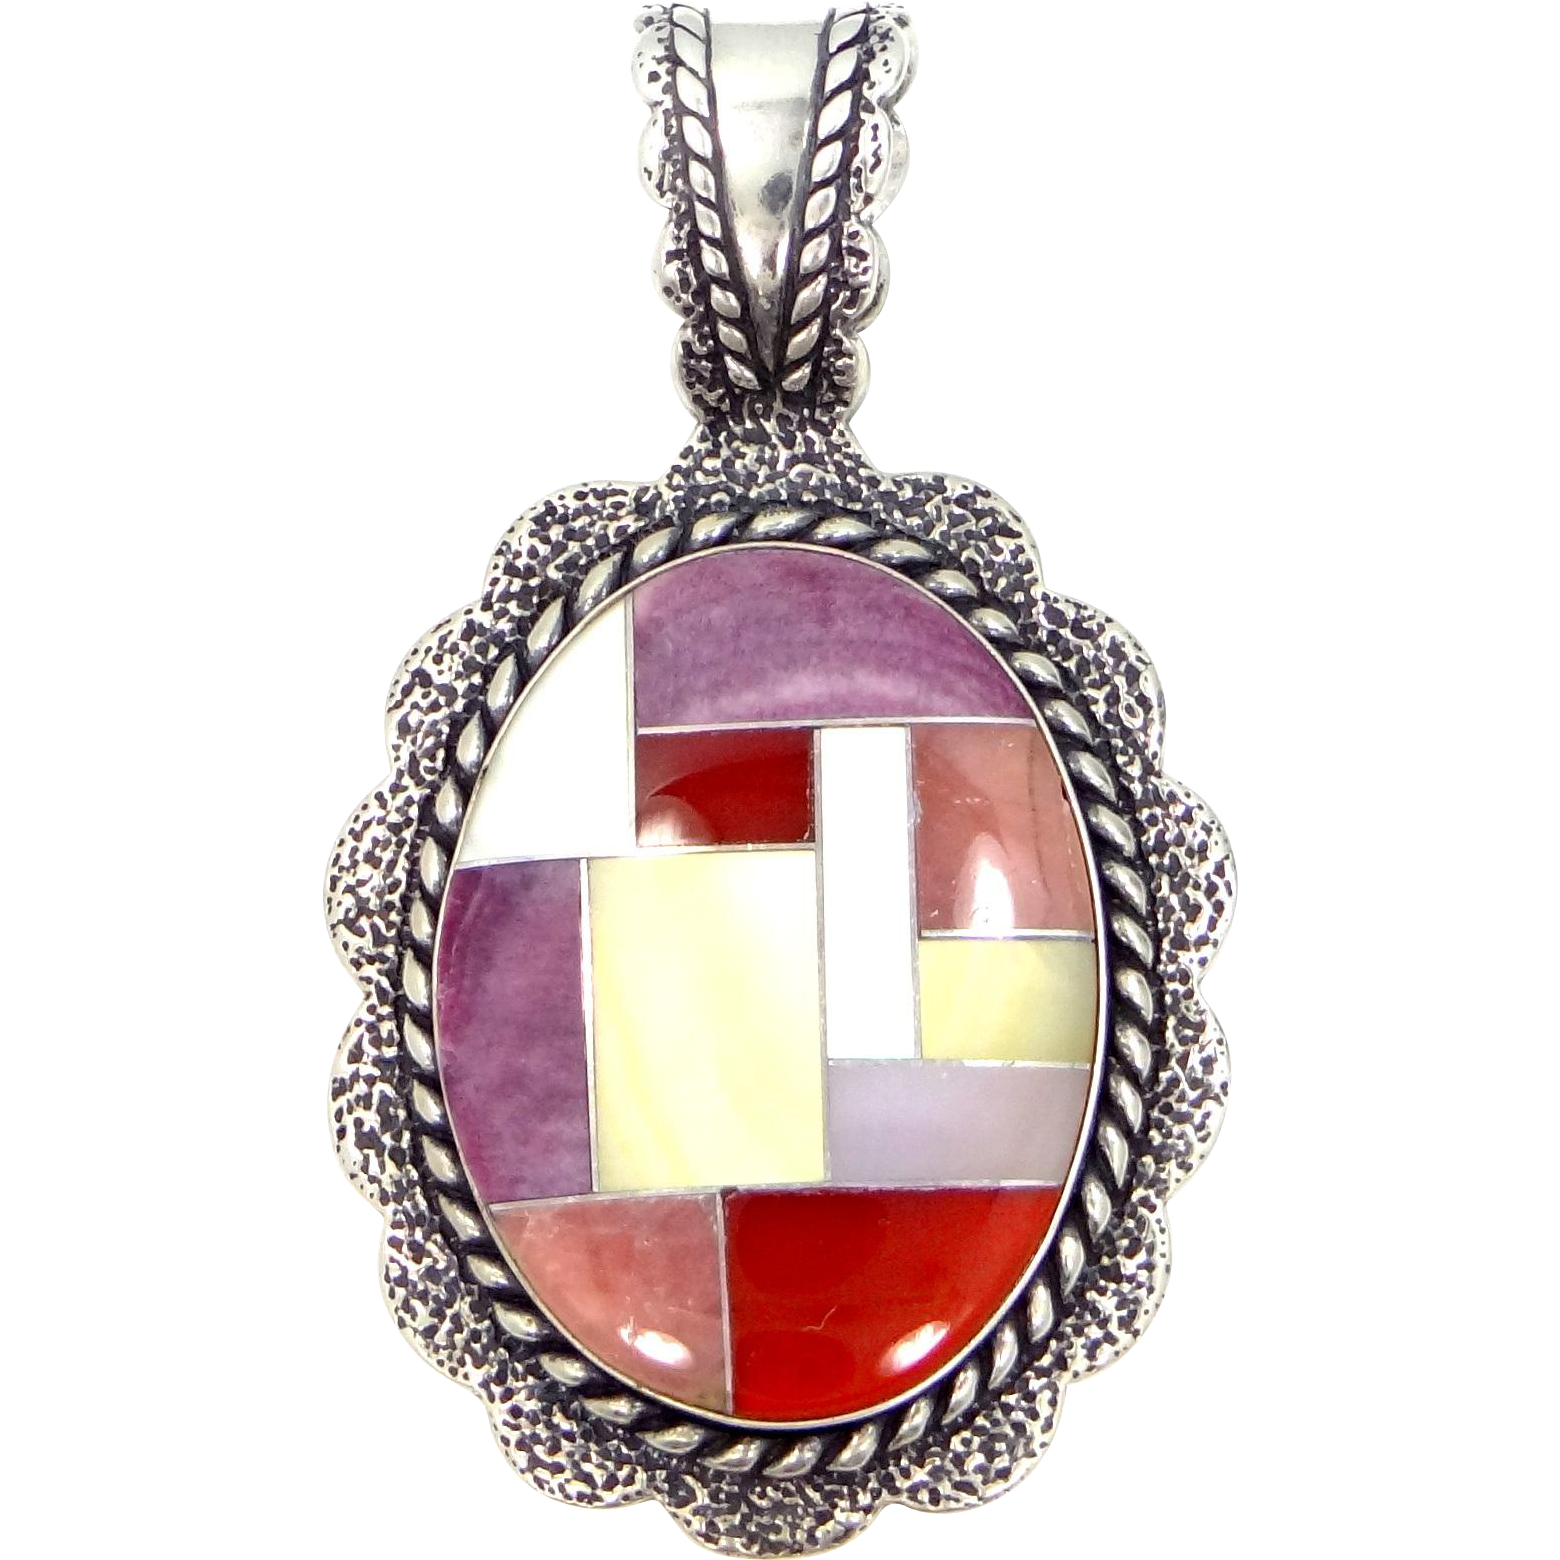 Relios Carolyn Pollack Sterling Silver & Inlaid Gemstones Pendant